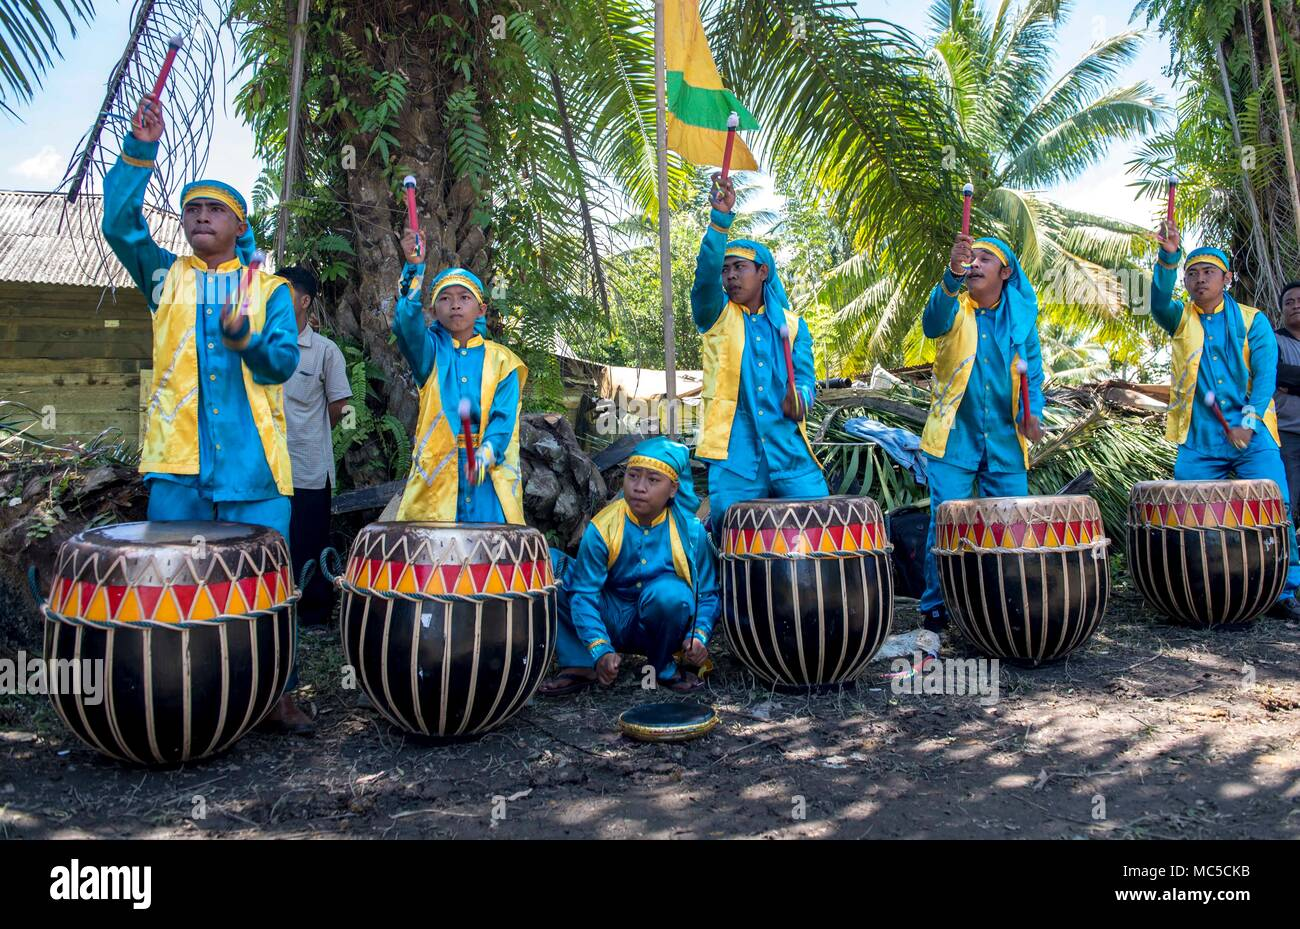 180402-N-RM689-0456  BENGKULU, Indonesia (April 2, 2018) Indonesians play the traditional bongos during a groundbreaking ceremony for the Peletakan Batu Partama Pembangunan shelter during the Indonesia mission stop for Pacific Partnership 2018 (PP18). PP18's mission is to work collectively with host and partner nations to enhance regional interoperability and disaster response capabilities, increase stability and security in the region, and foster new and enduring friendships across the Indo-Pacific Region. Pacific Partnership, now in its 13th iteration, is the largest annual multinational hum - Stock Image